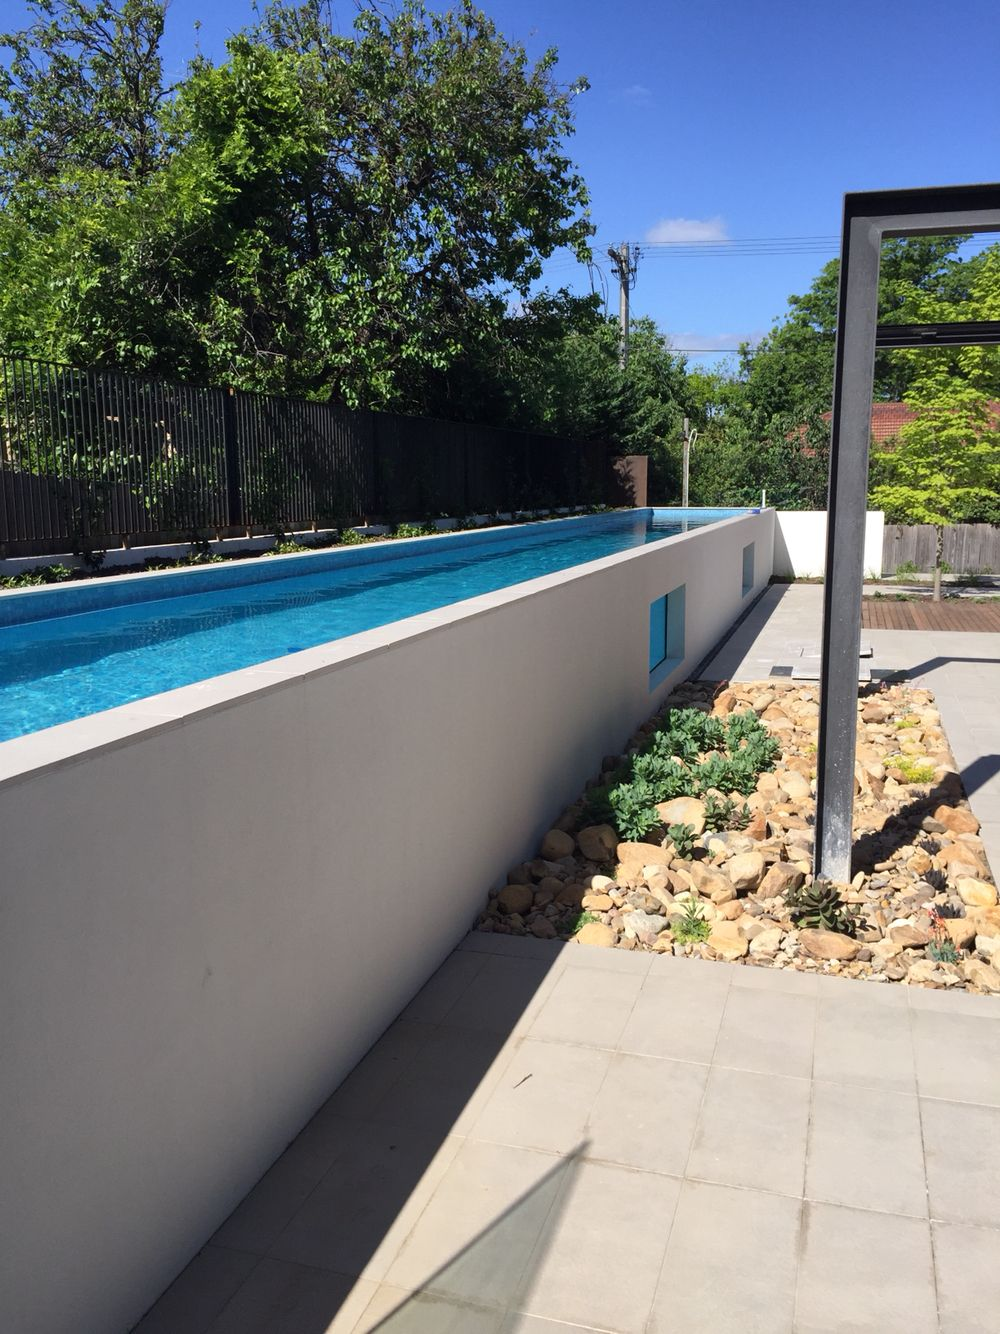 Awesome Side Of Above Ground Lap Pool   1.2m Height Means You Do Not Need Pool